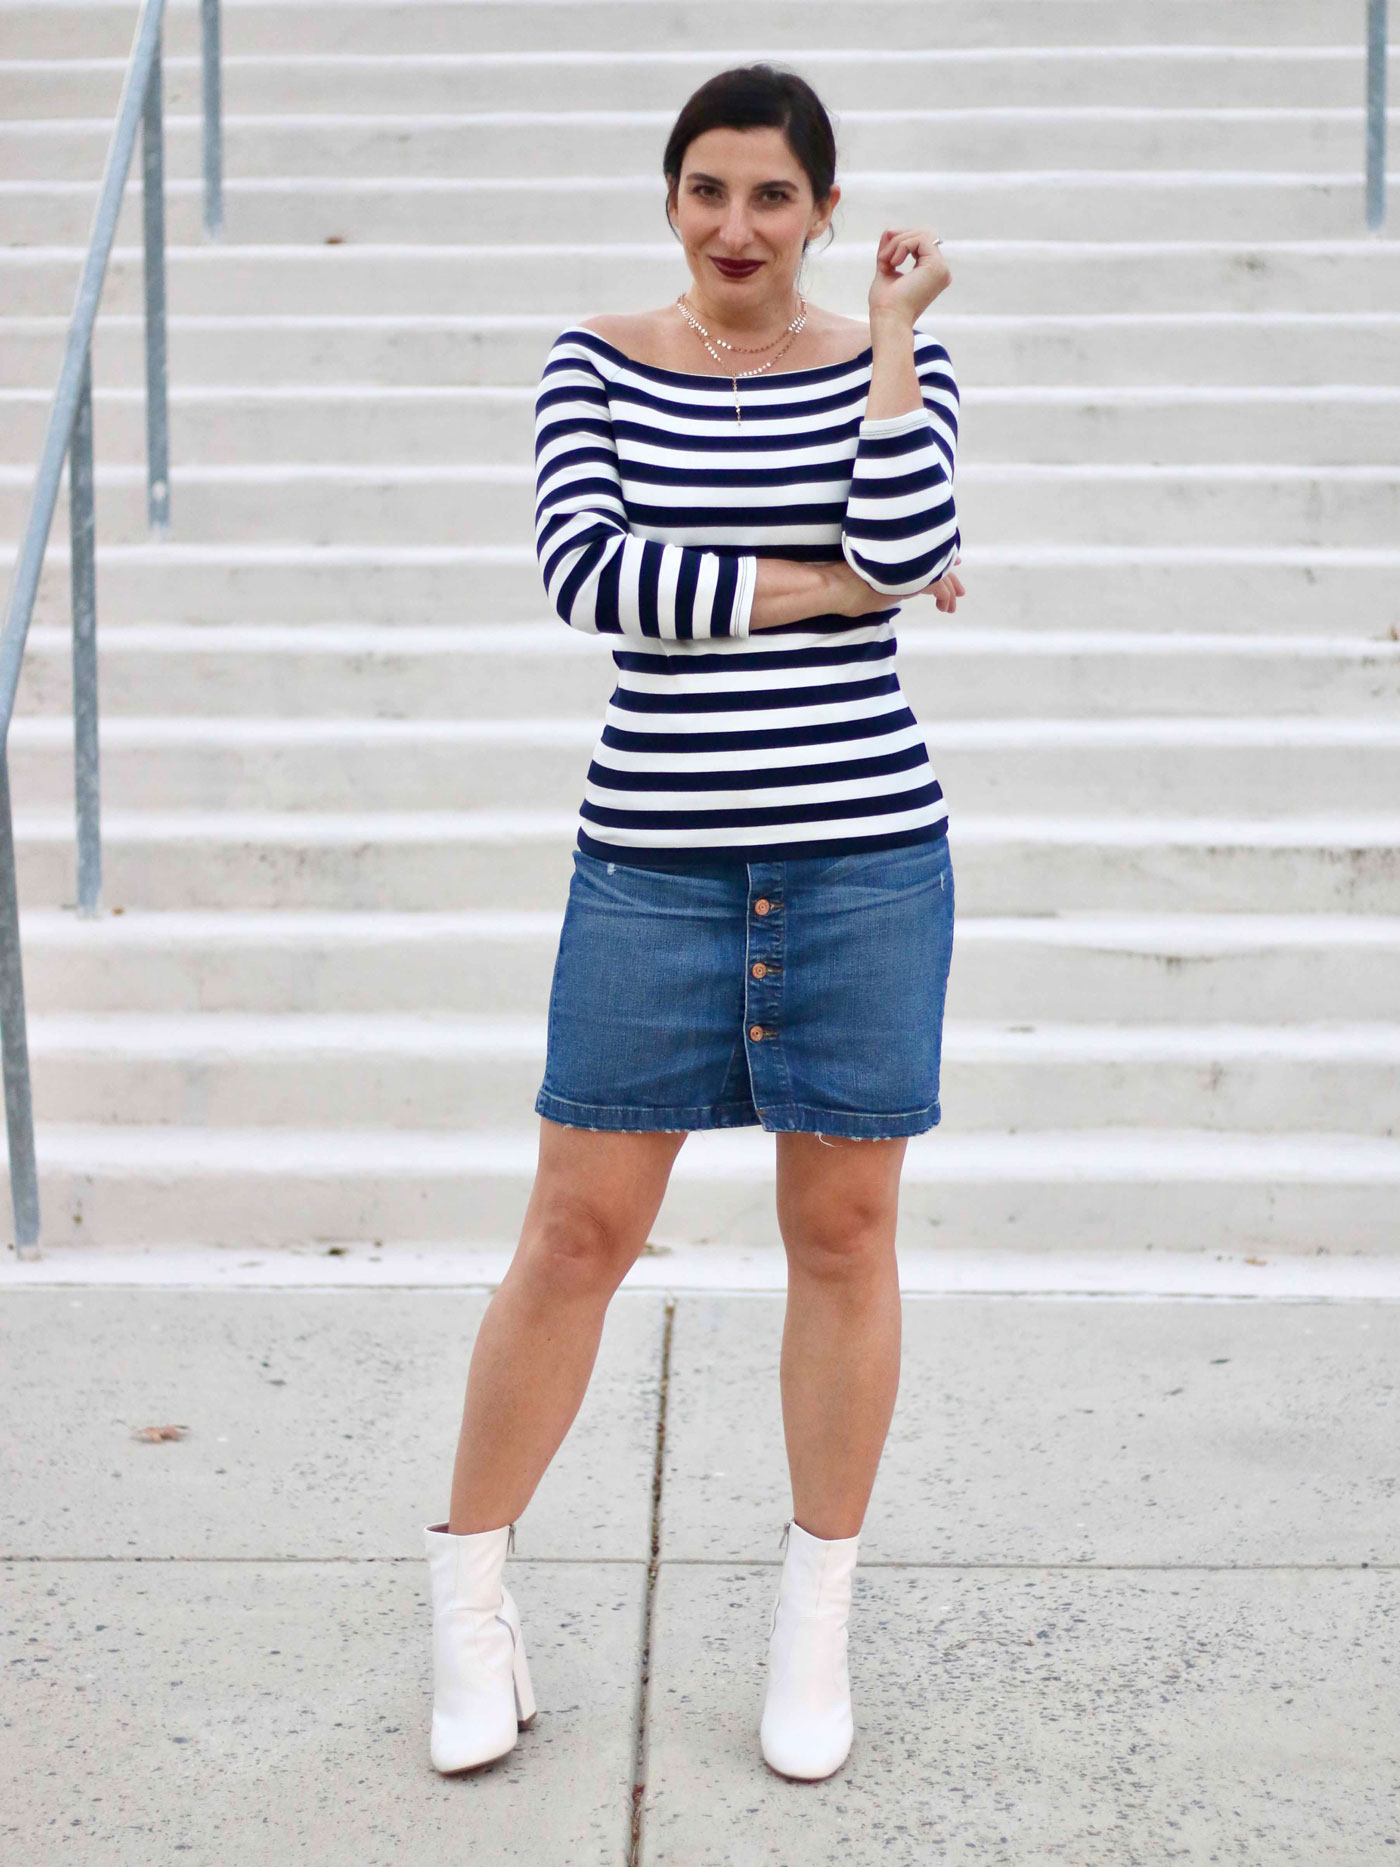 White Booties, J.Crew Striped Off-The-Shoulder, Denim Skirt